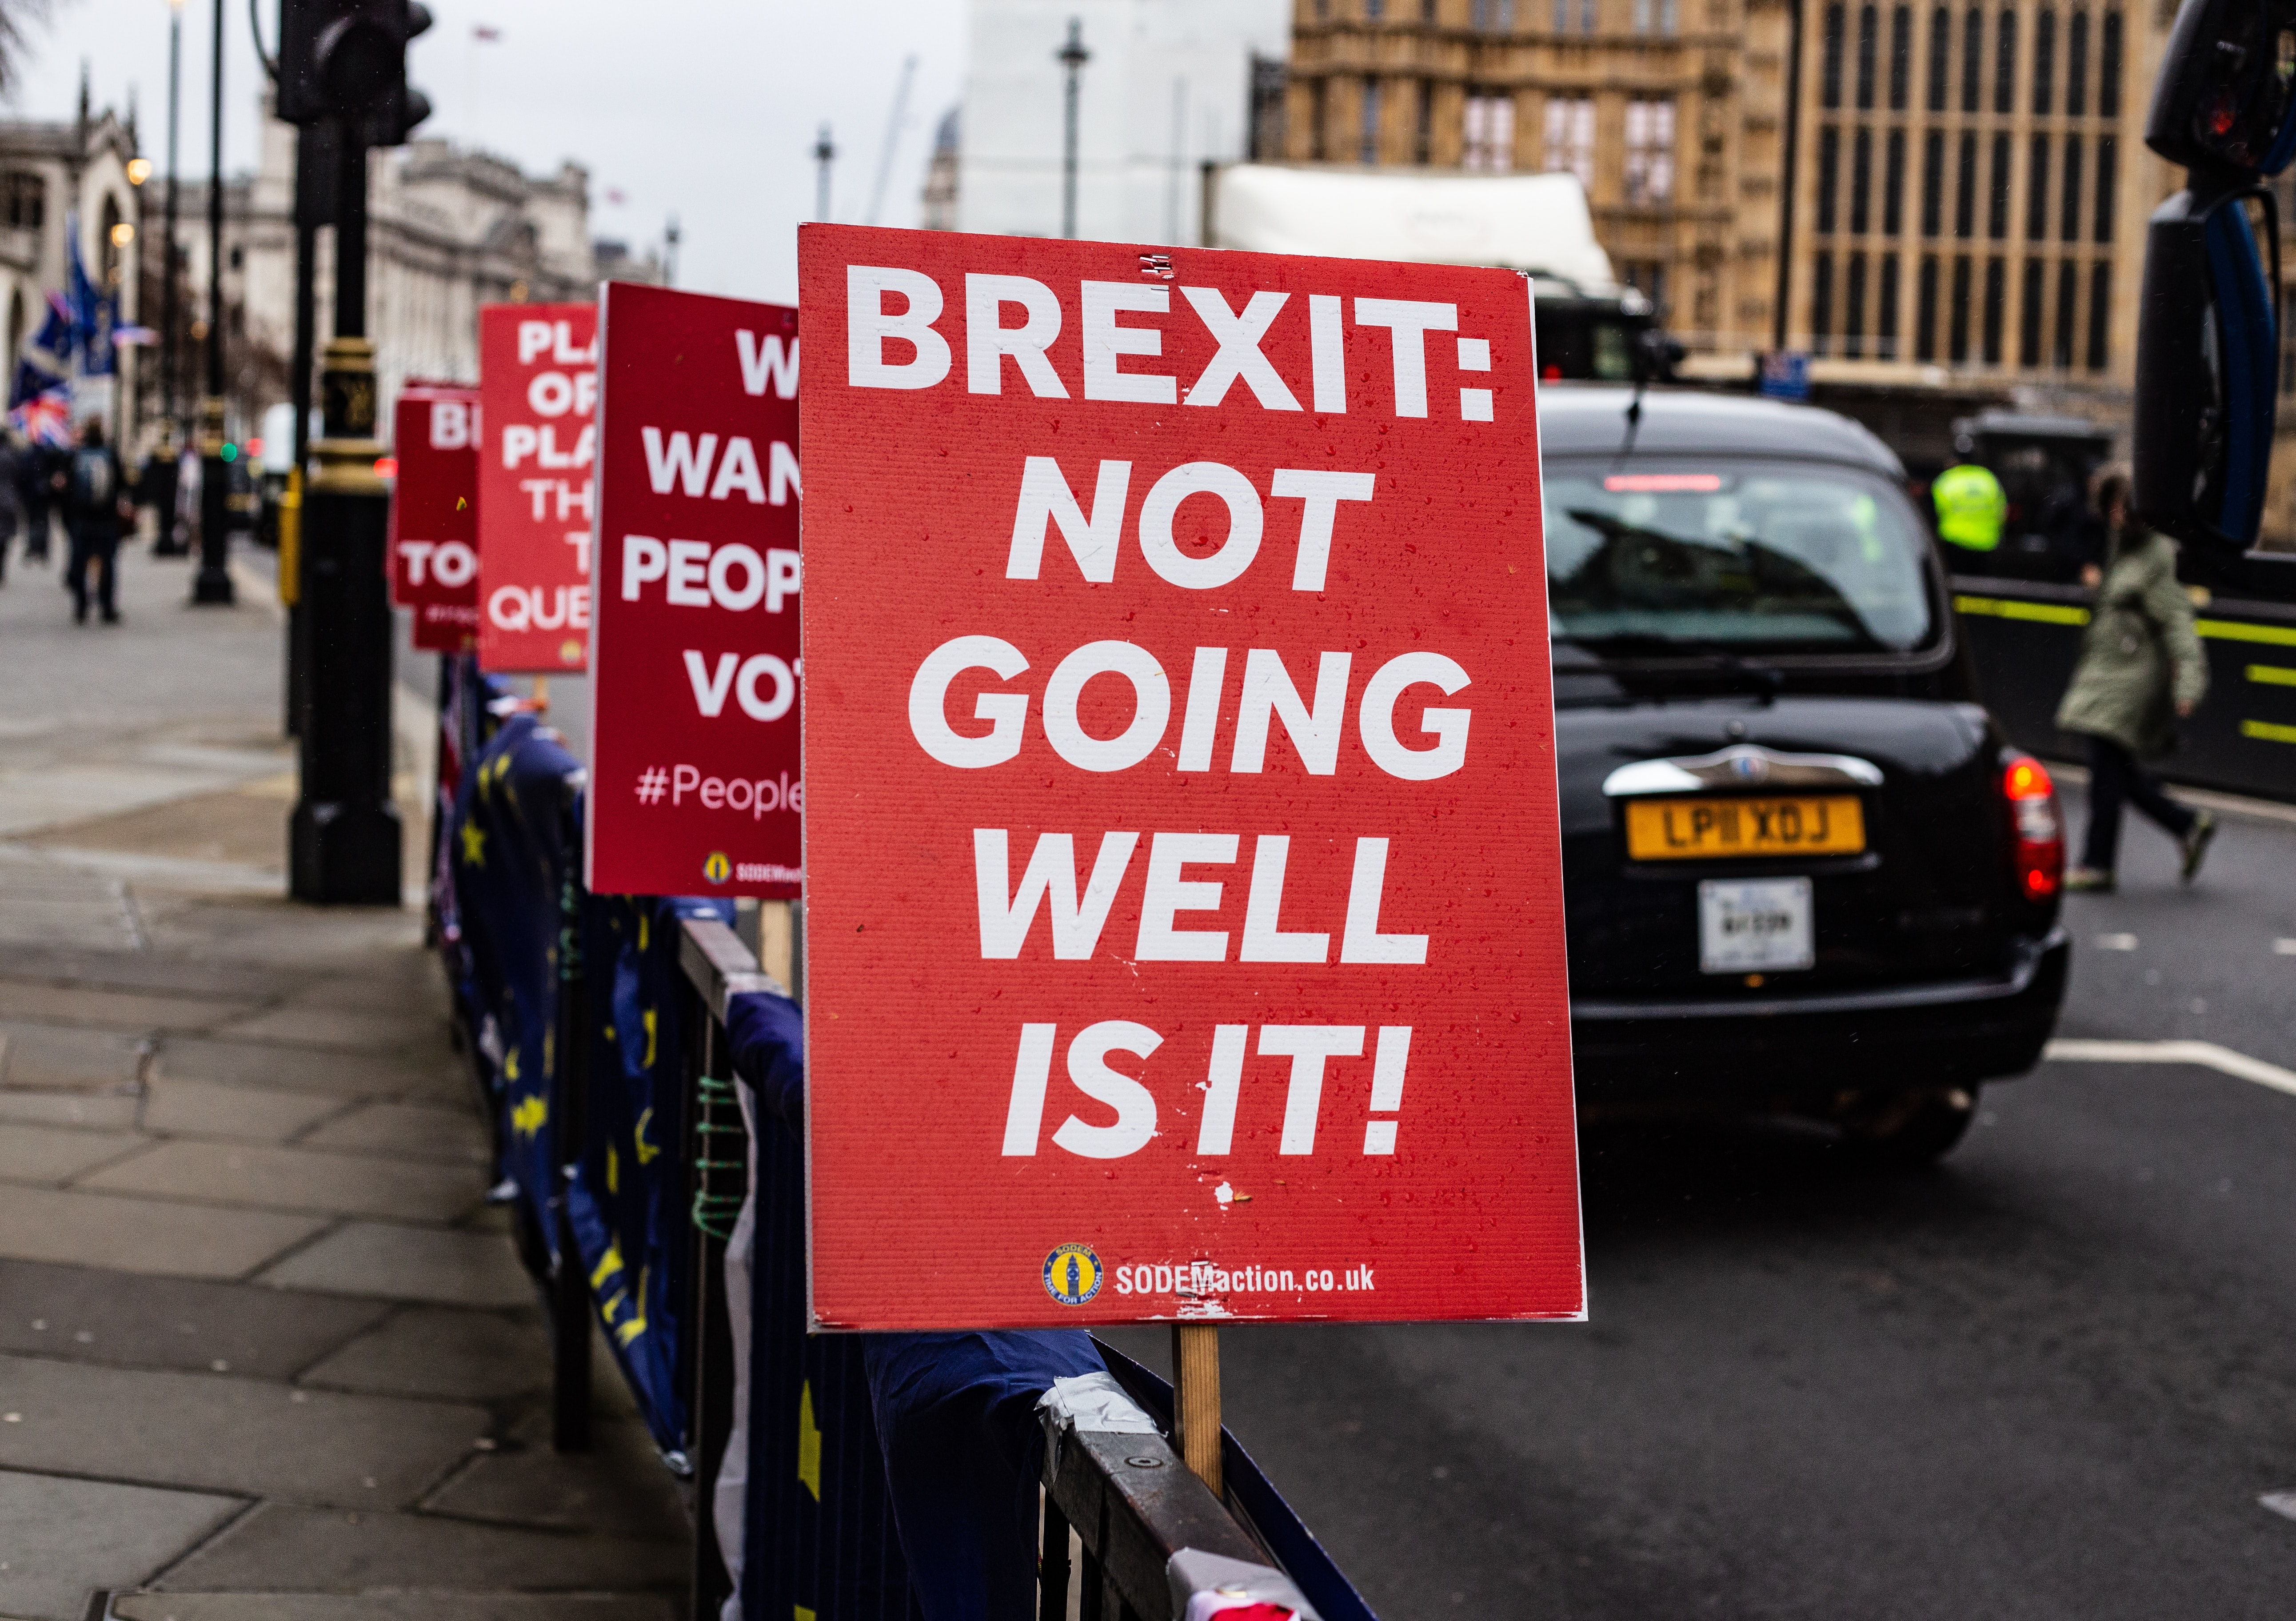 Brexit: not going well is it banner sign